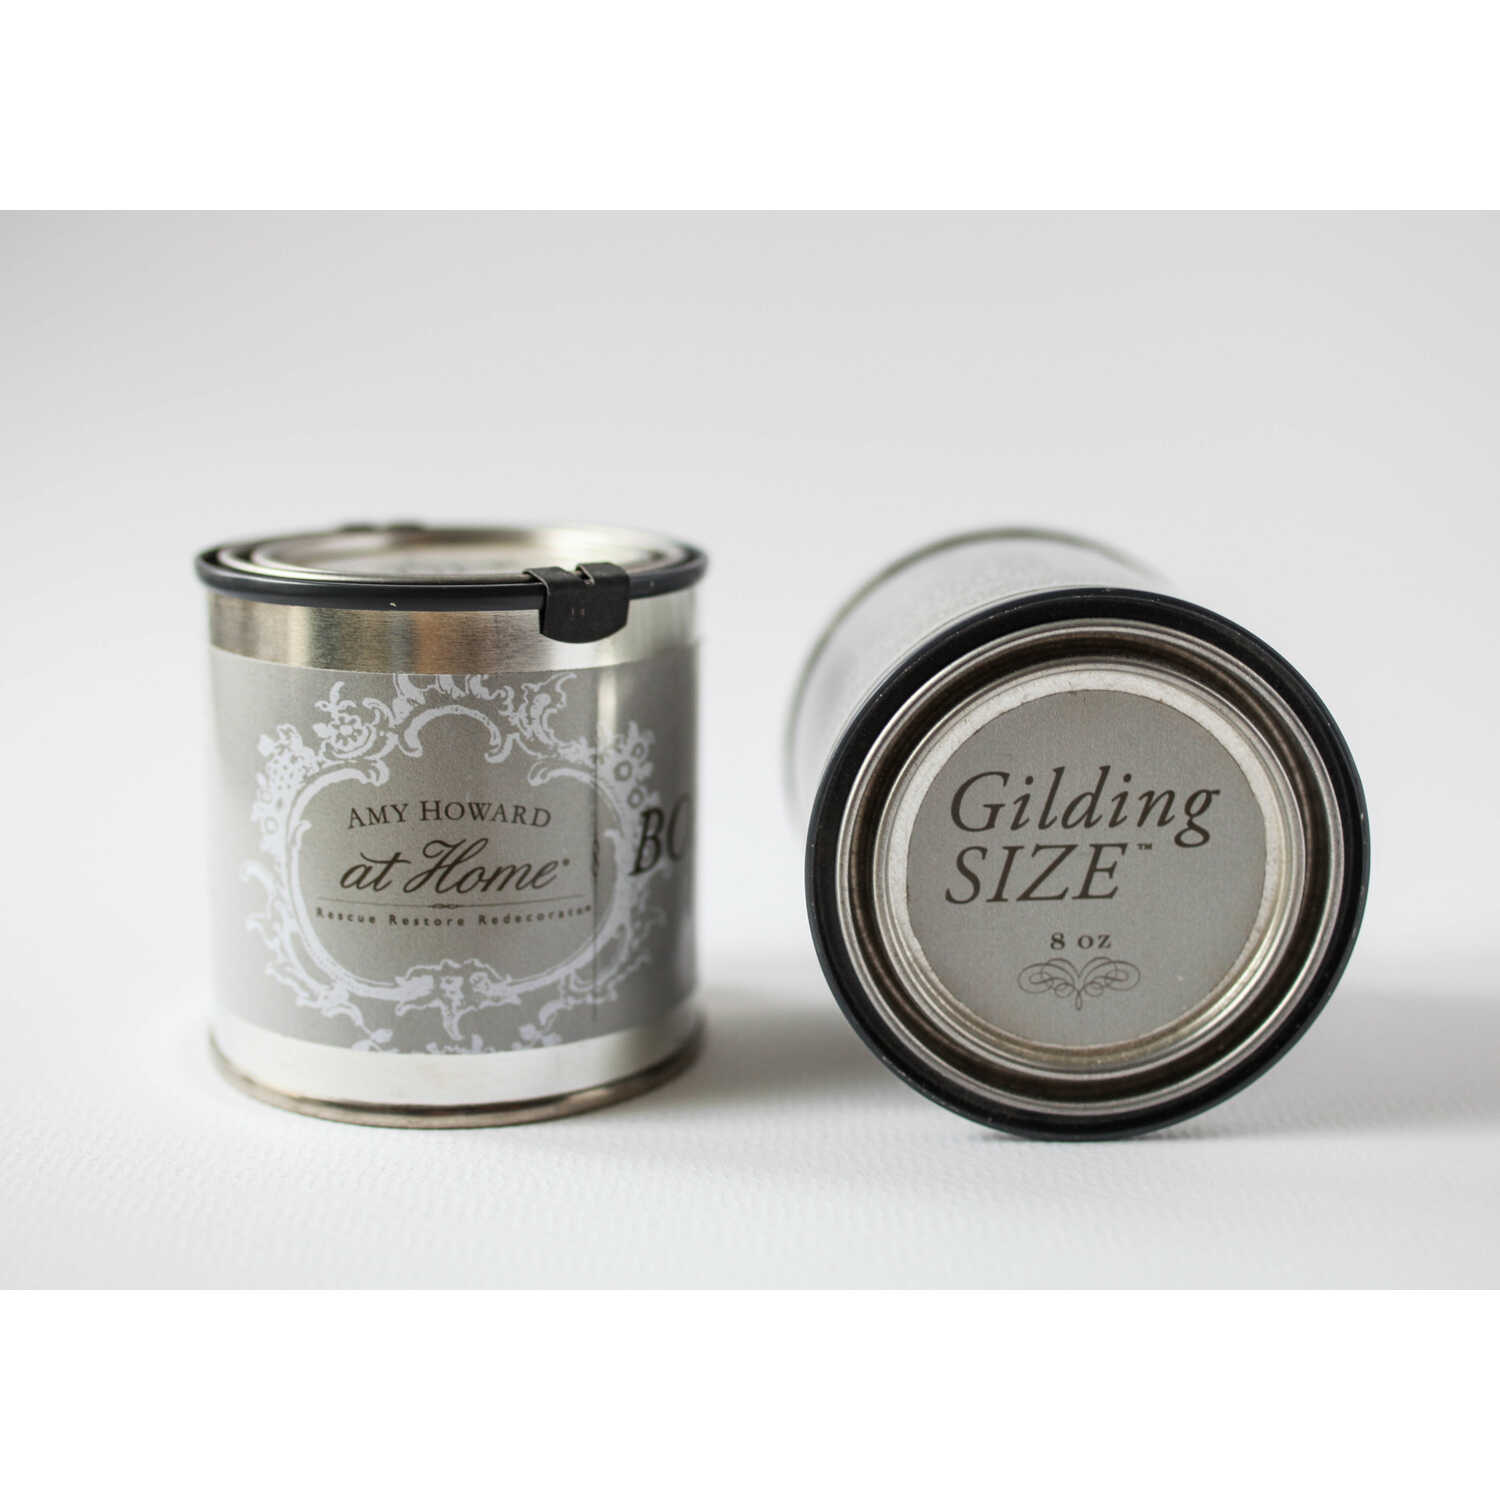 Amy Howard at Home  Gilding Size  4 oz.